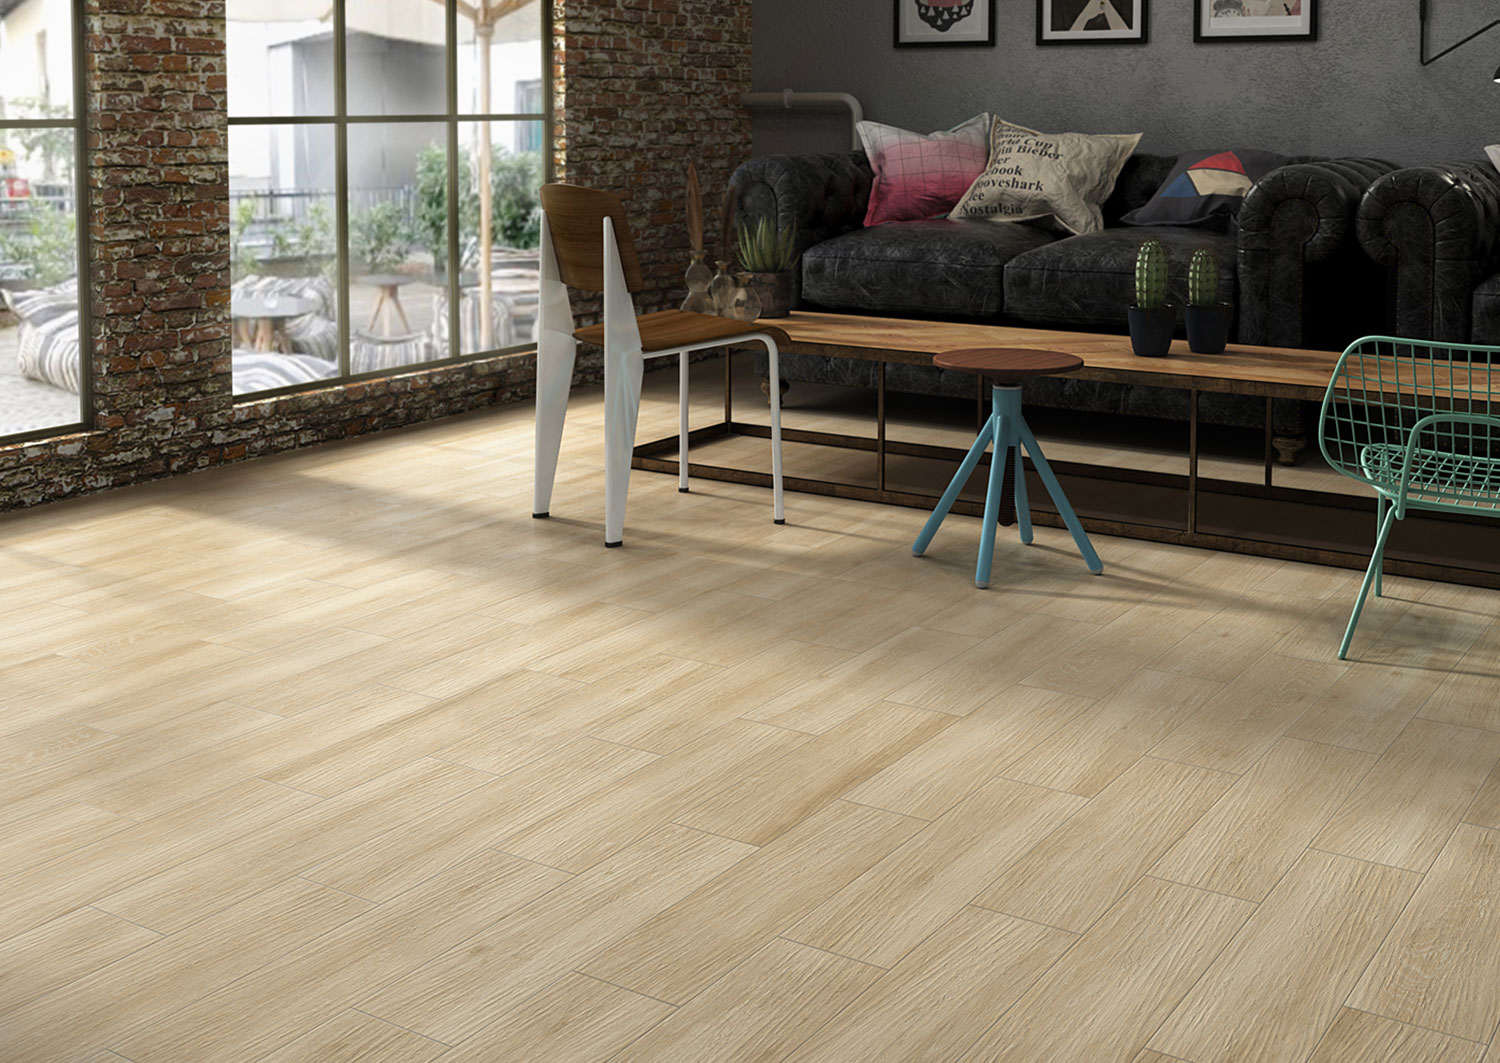 Pacano Porcelain Floor Tile- Beige sample- by Lint Tile